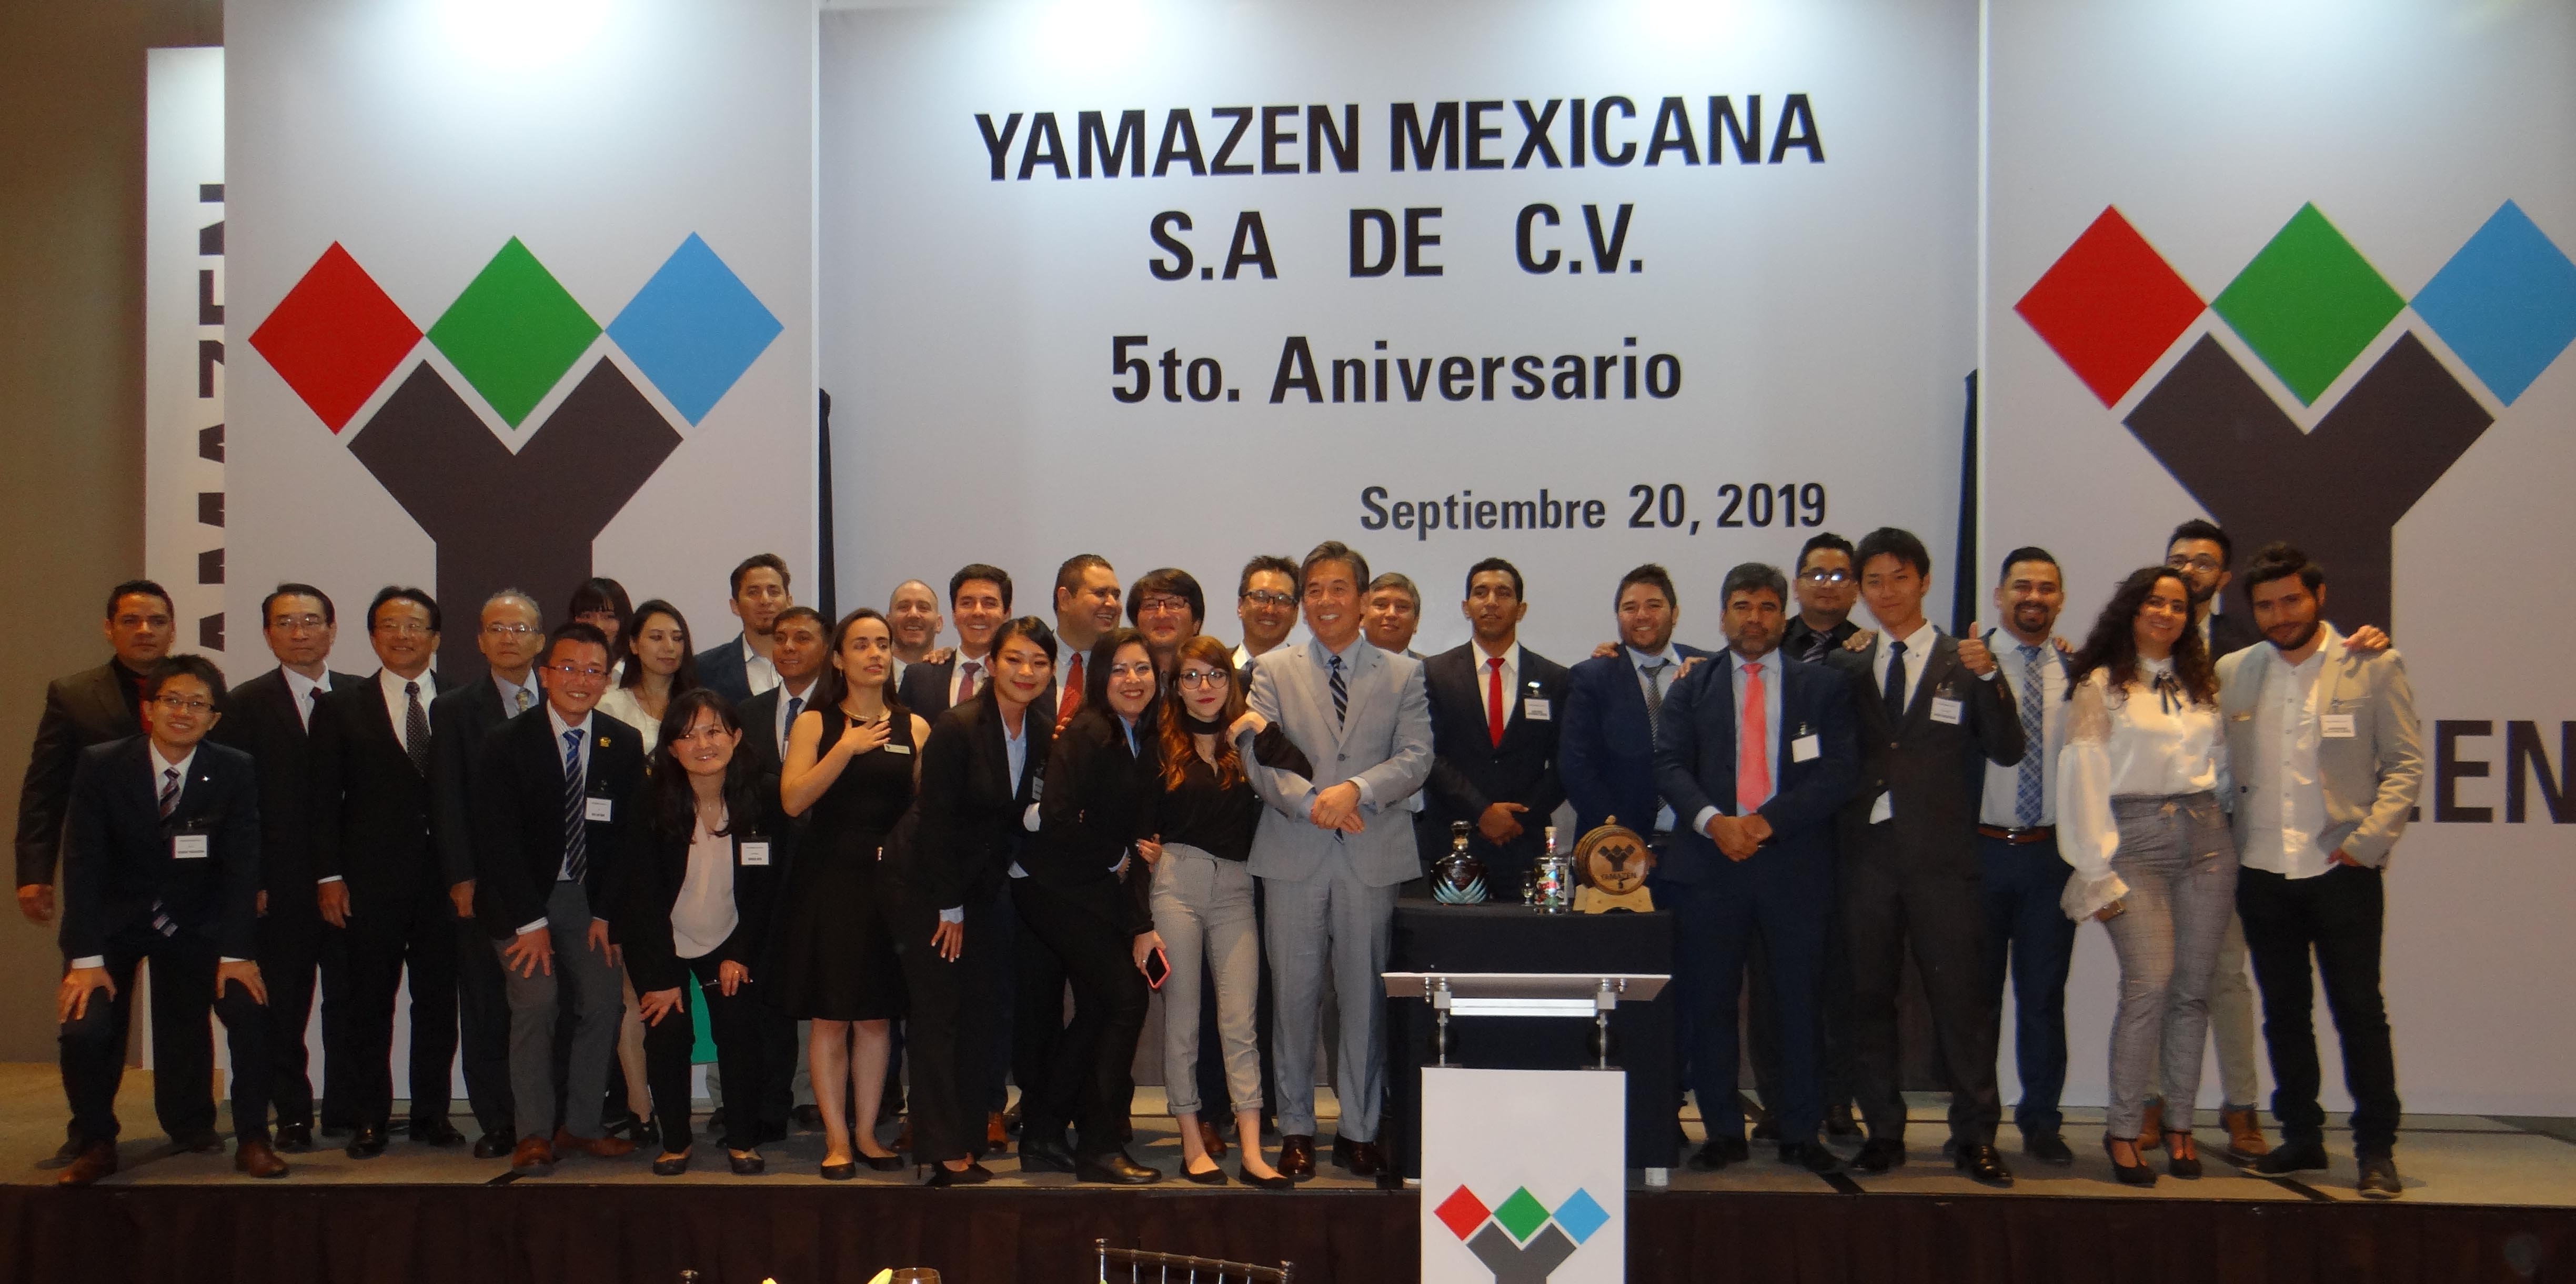 Yamazen Mexicana celebrates its 5th anniversary